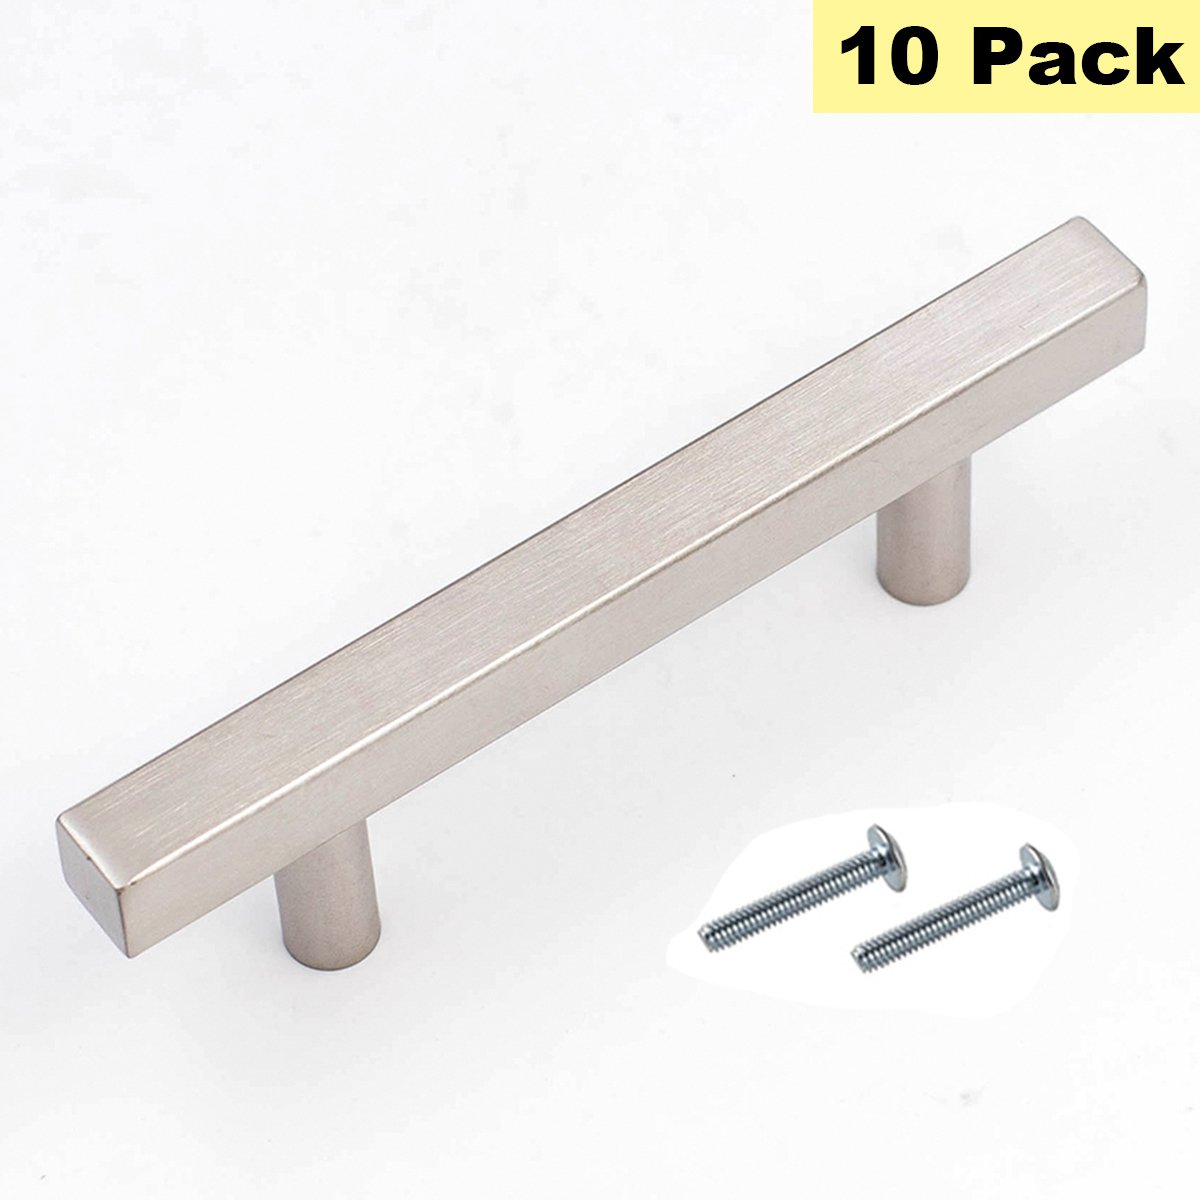 Square Cabinet Pulls 3.5 inch Drawer Pulls Brushed Nickel Cabinet Knobs - Peaha PHJ22BSS90 Cabinet Handles for Kitchen Bathroom Stainless Steel Furniture Hardware 10 Pack